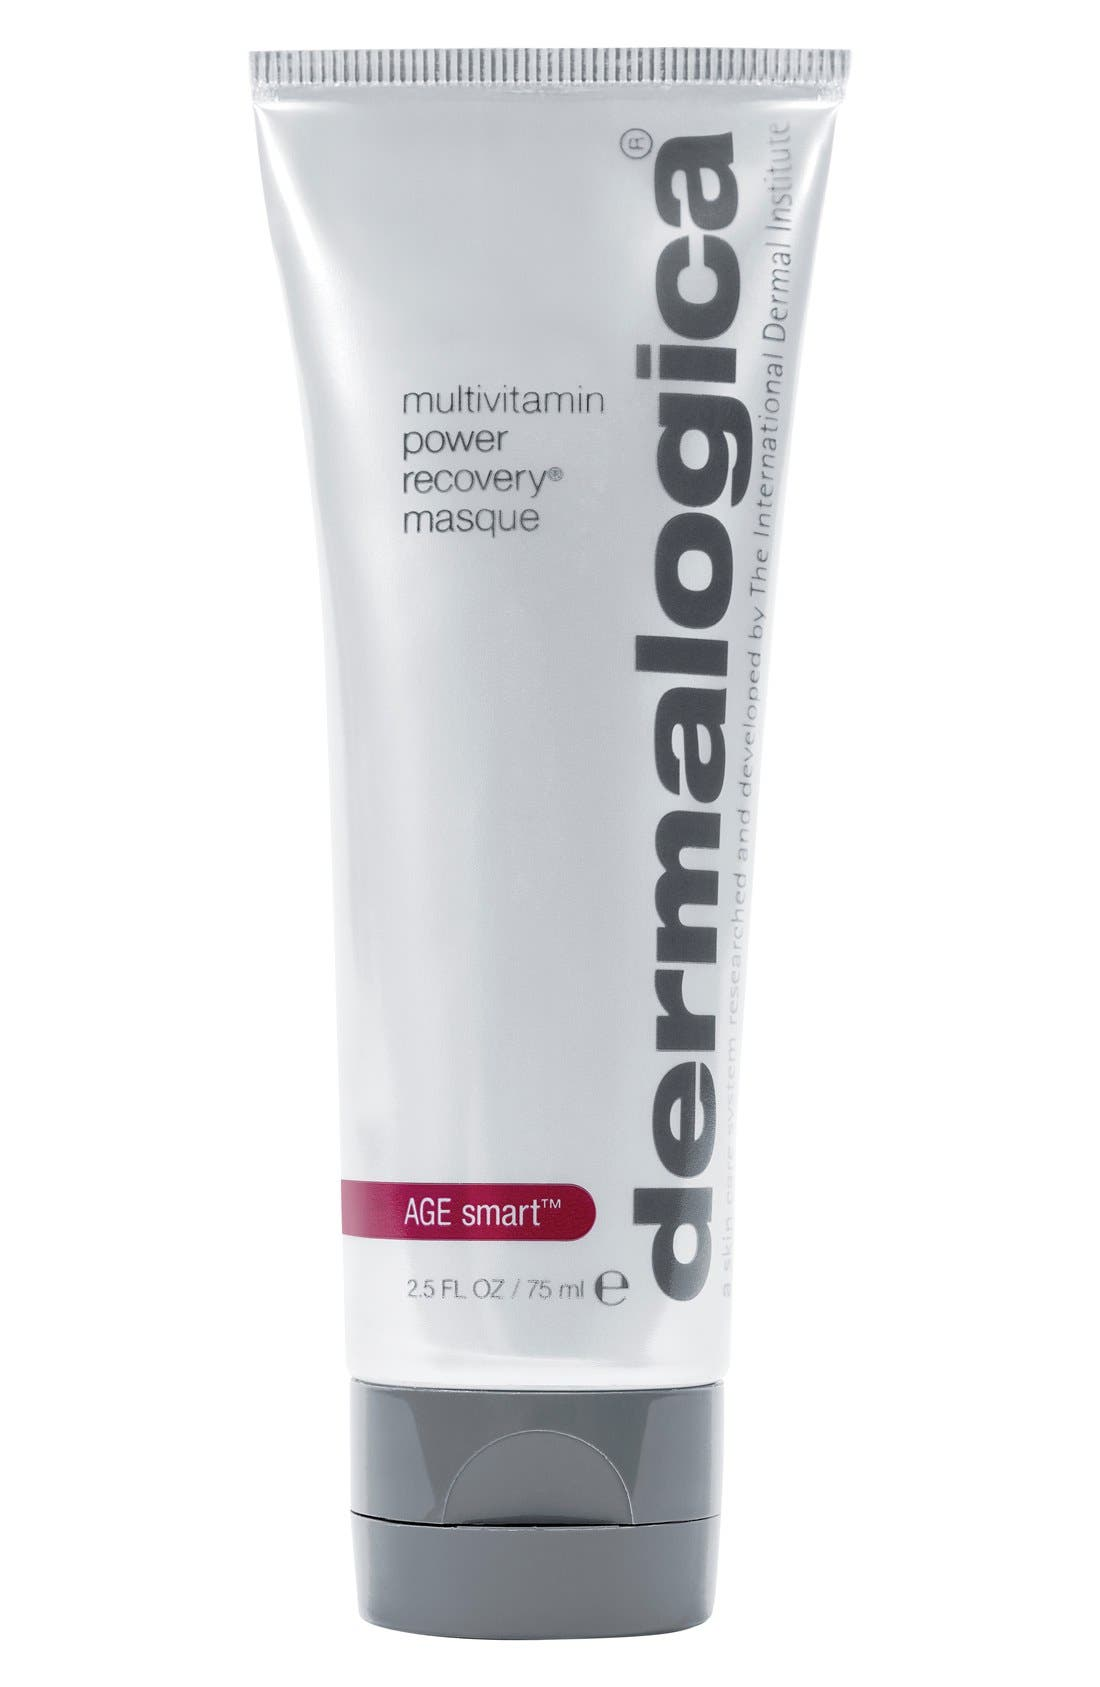 DERMALOGICA,                              Multivitamin Power Recovery Masque,                             Main thumbnail 1, color,                             NO COLOR